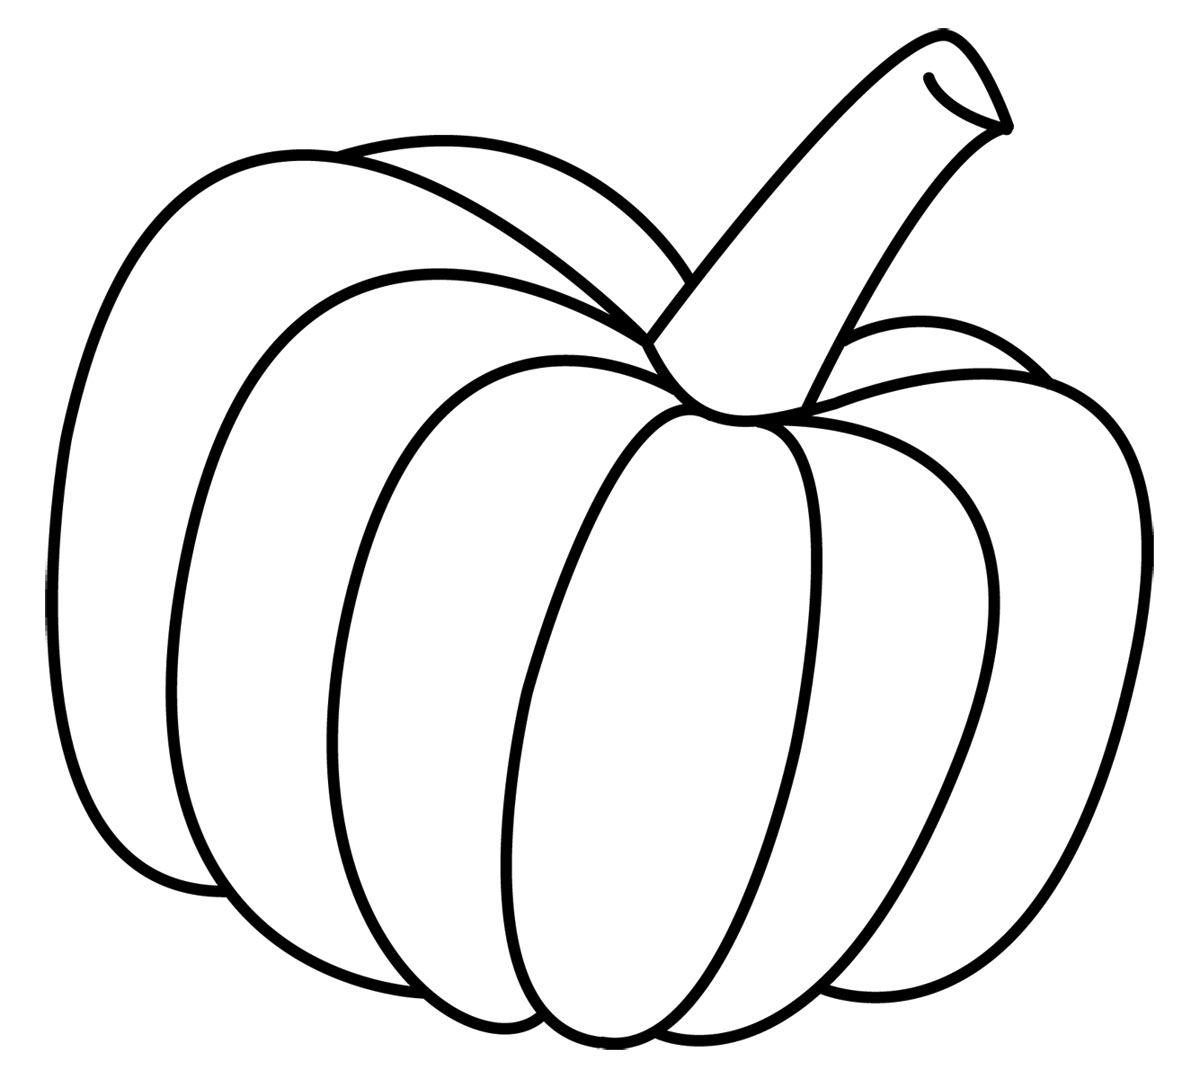 pumpkin border black and white clipart clipart suggest treasure box clip art for valentine's treasure chests clip art